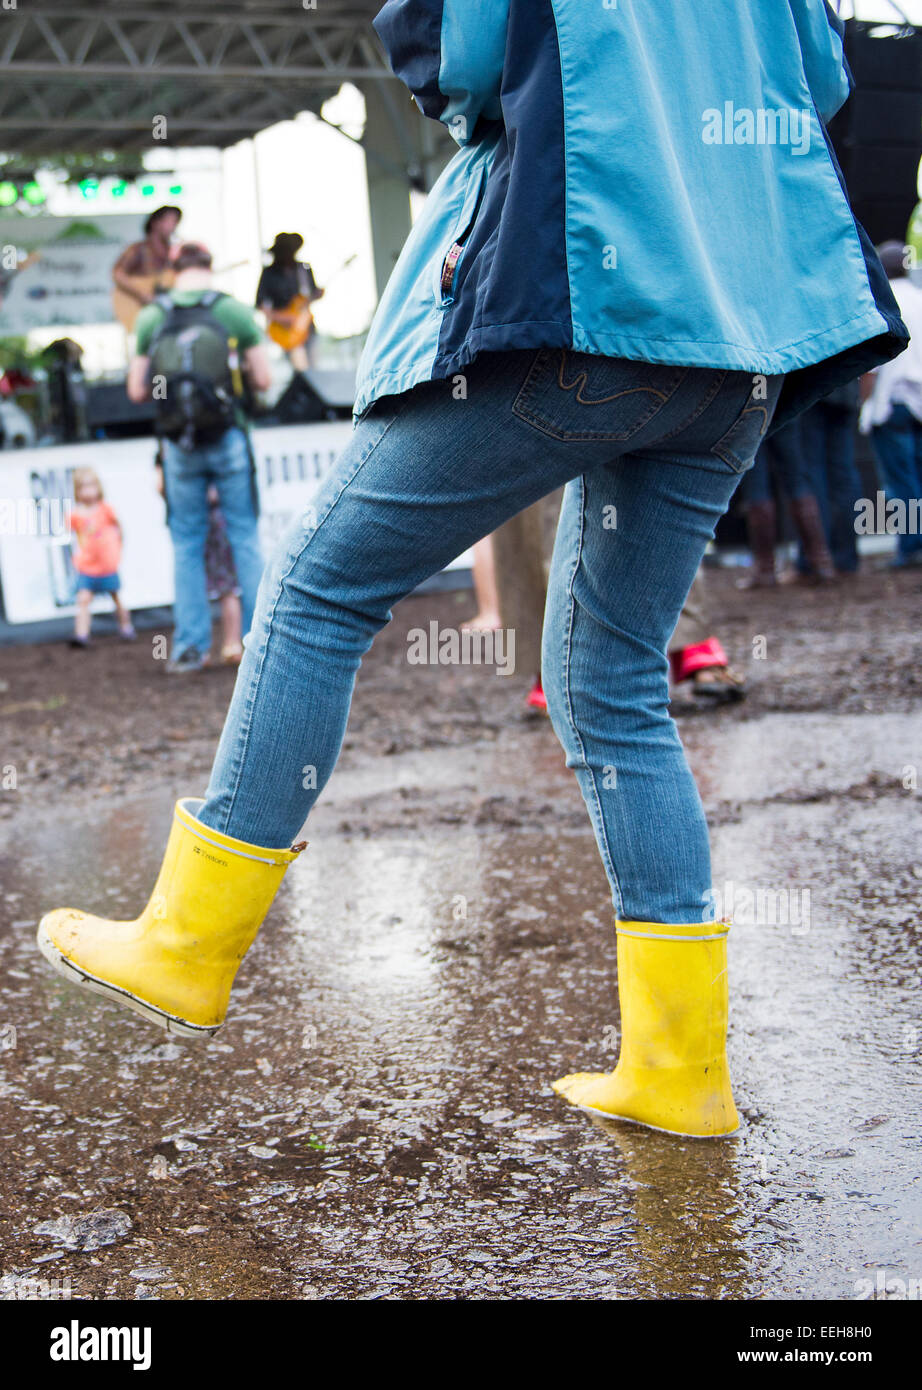 Yellow Rain Boots Stock Photos & Yellow Rain Boots Stock Images ...